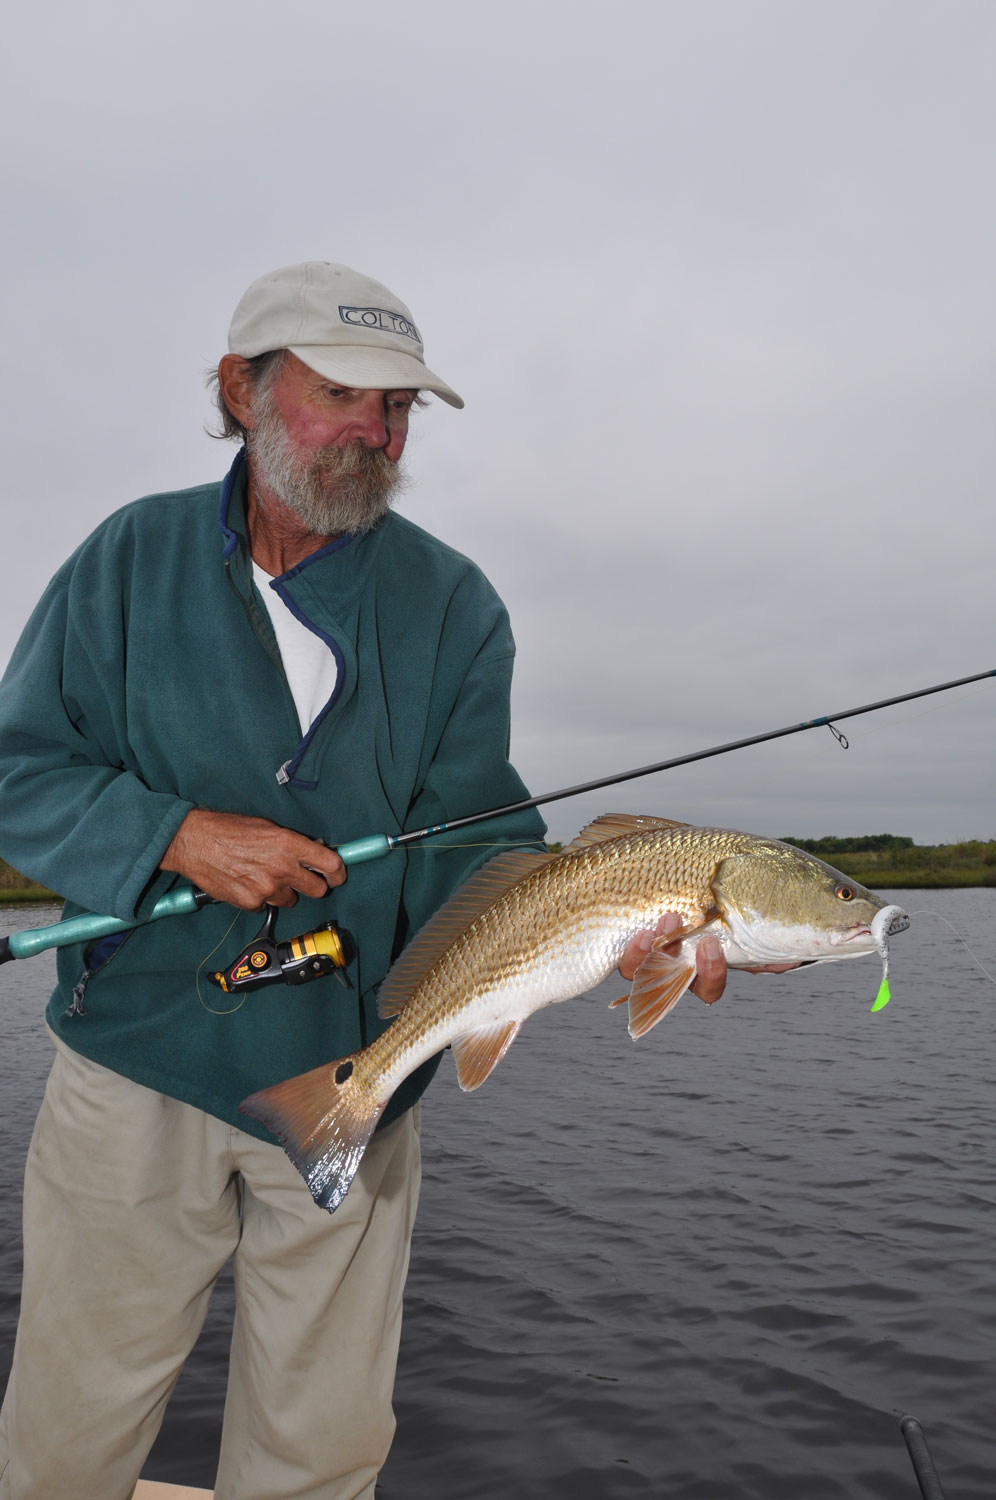 Topsail Island Sand Push Aerial View: Tips For Fishing For Redfish Out Of North Topsail Beach